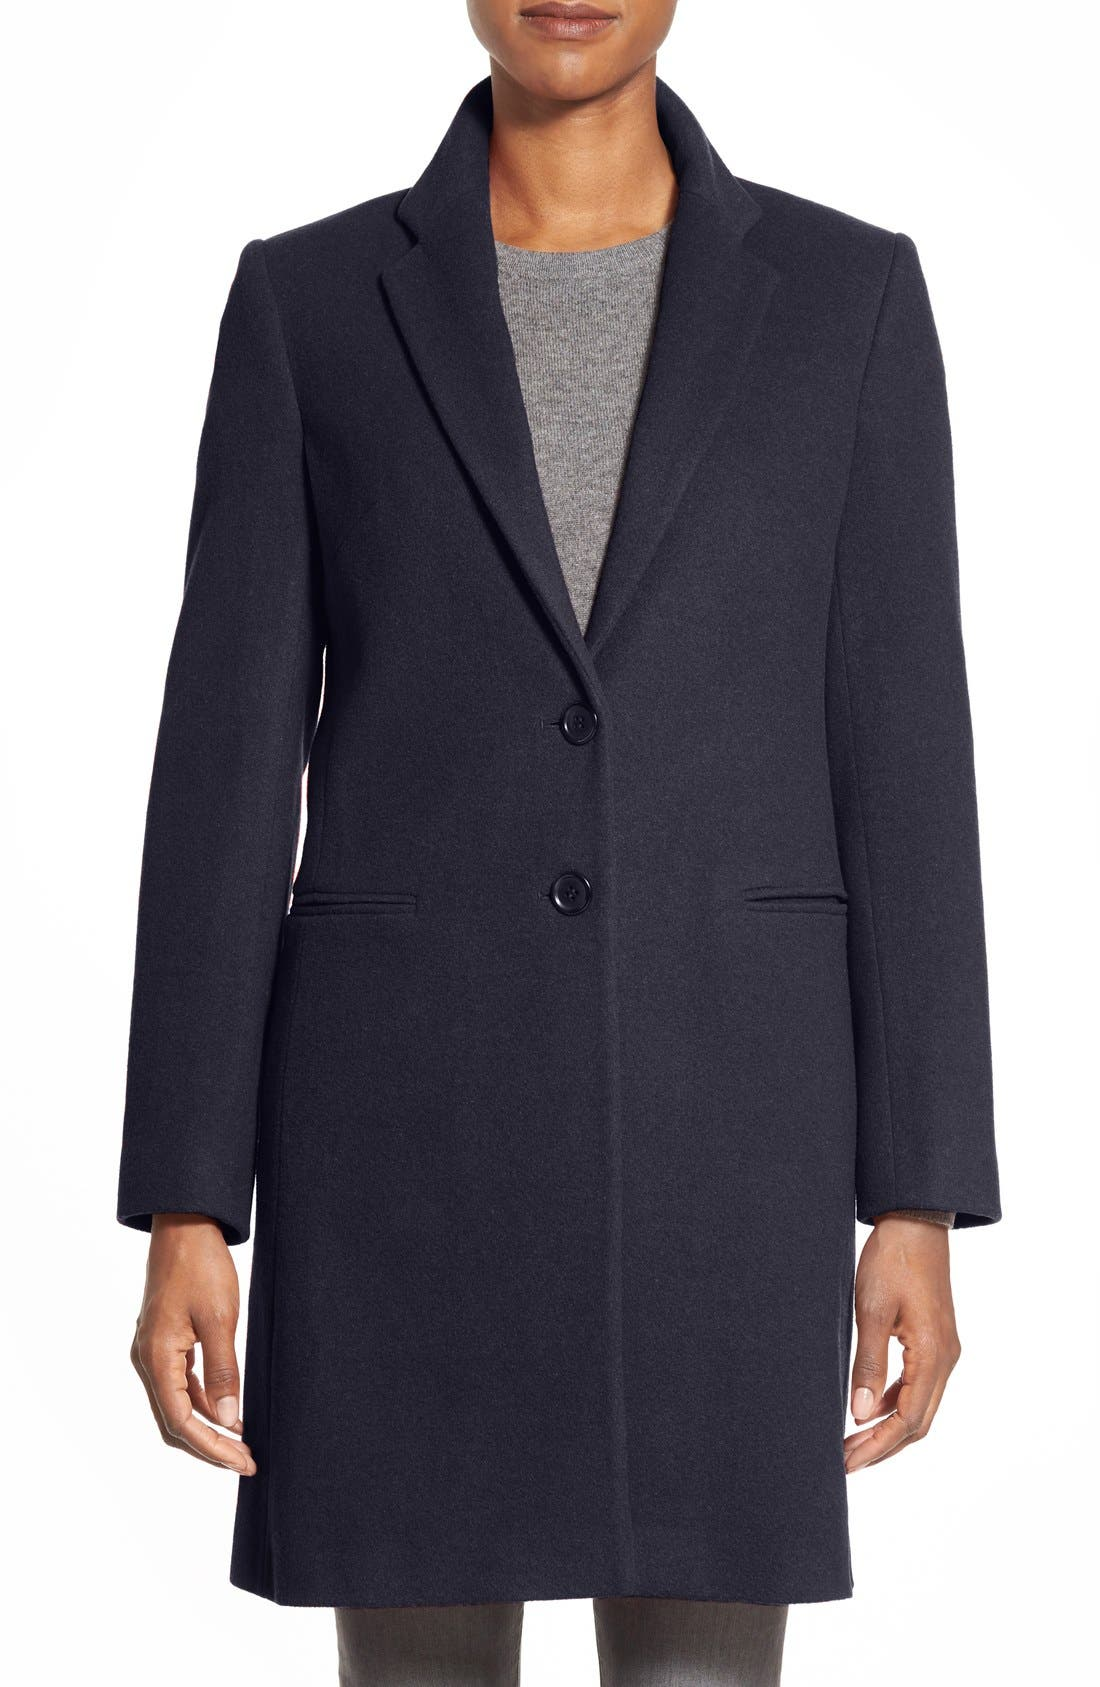 Helene Berman Wool Blend College Coat